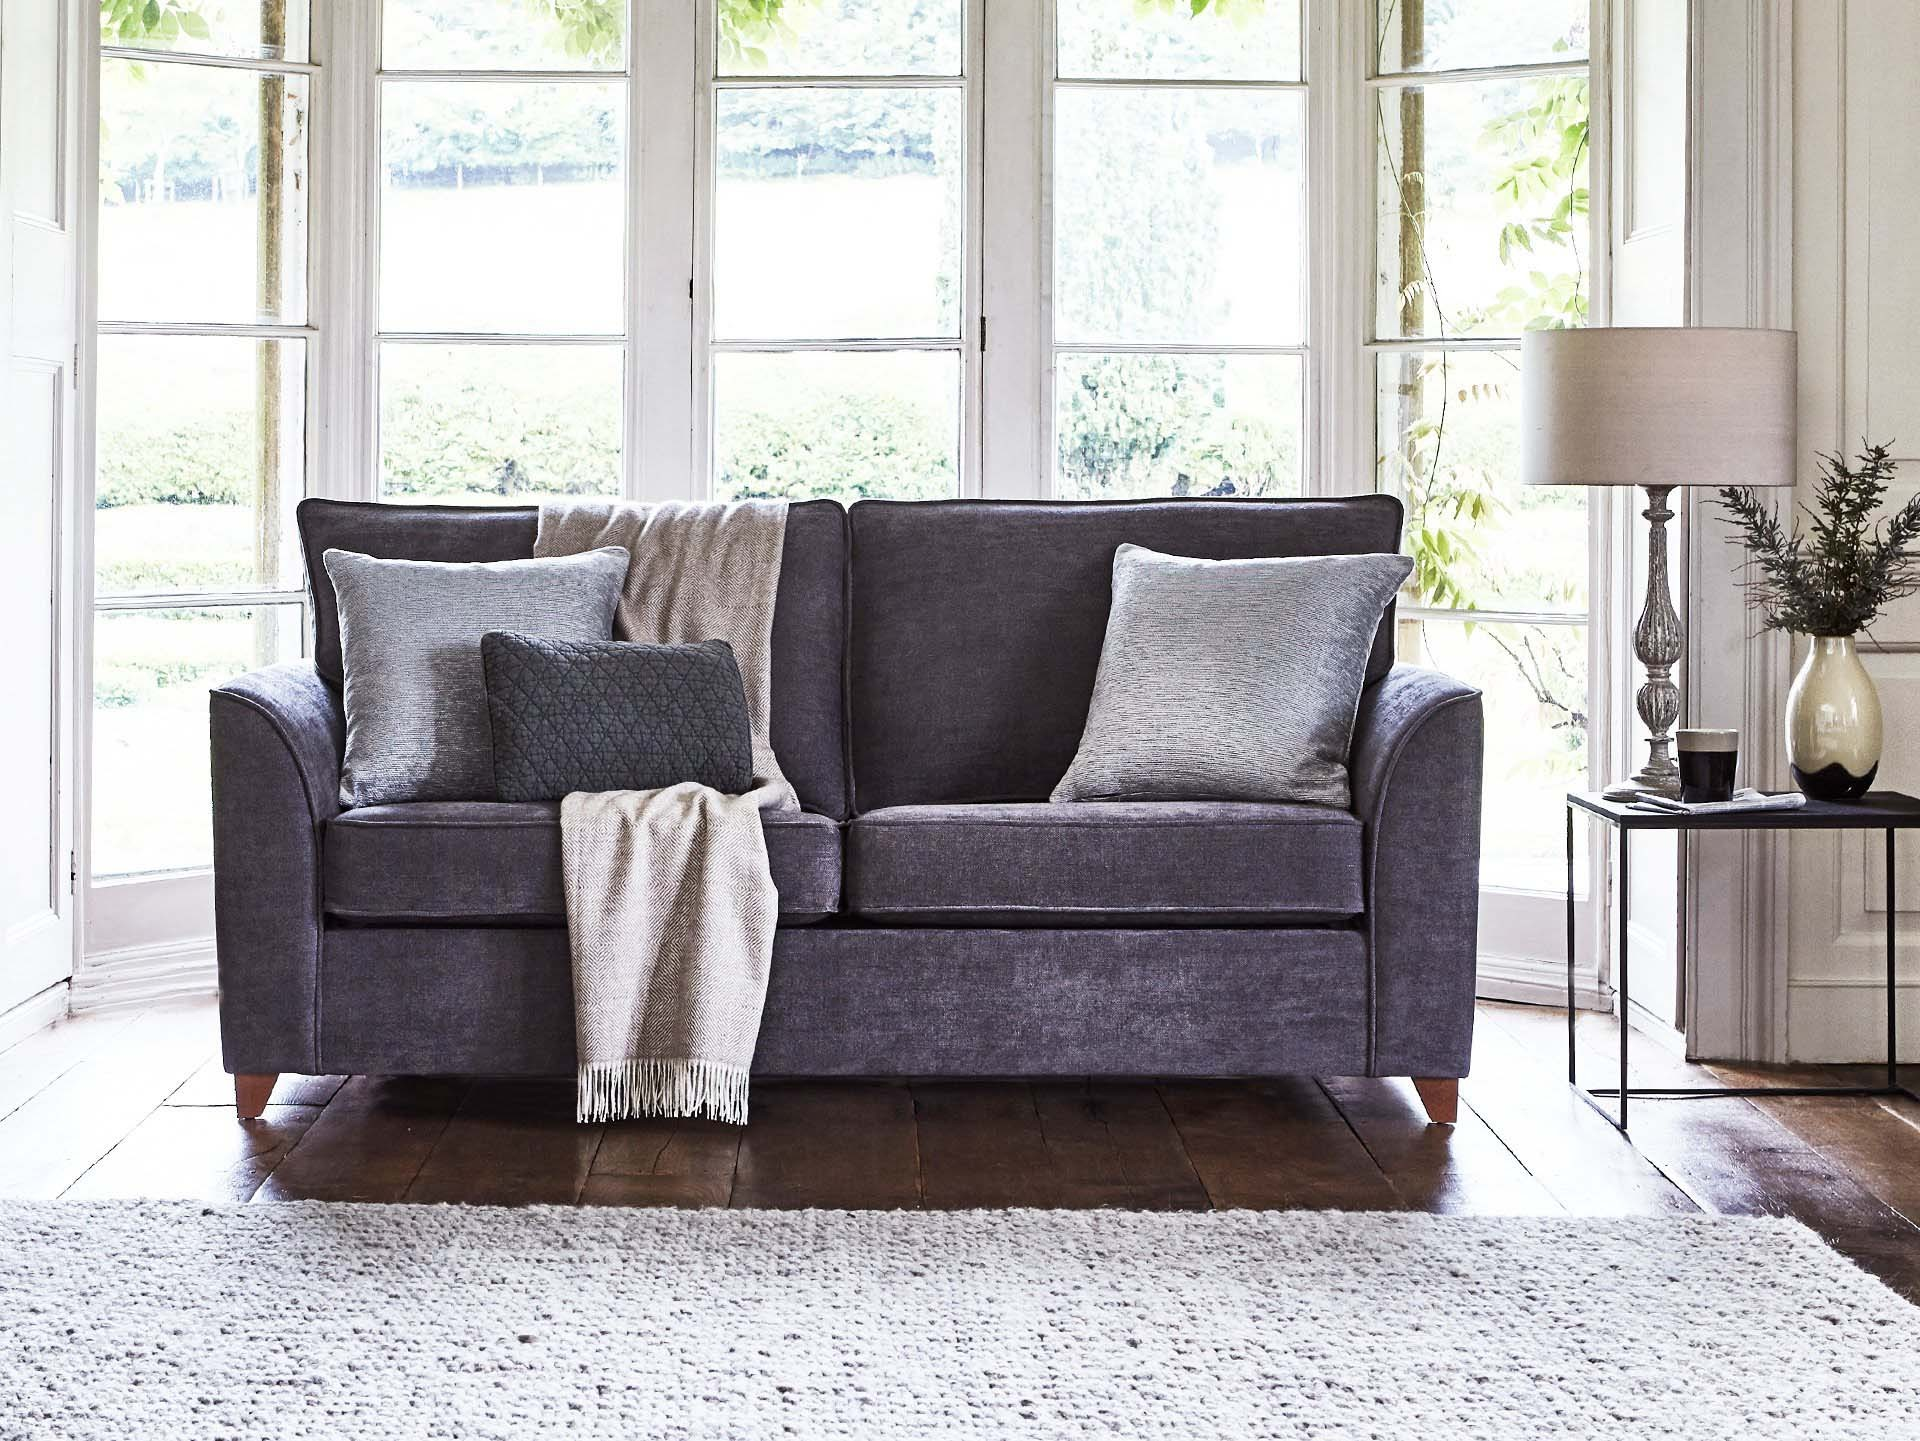 This is how I look in Stain Resistant  Linen Cotton Pewter with reflex foam seat cushions